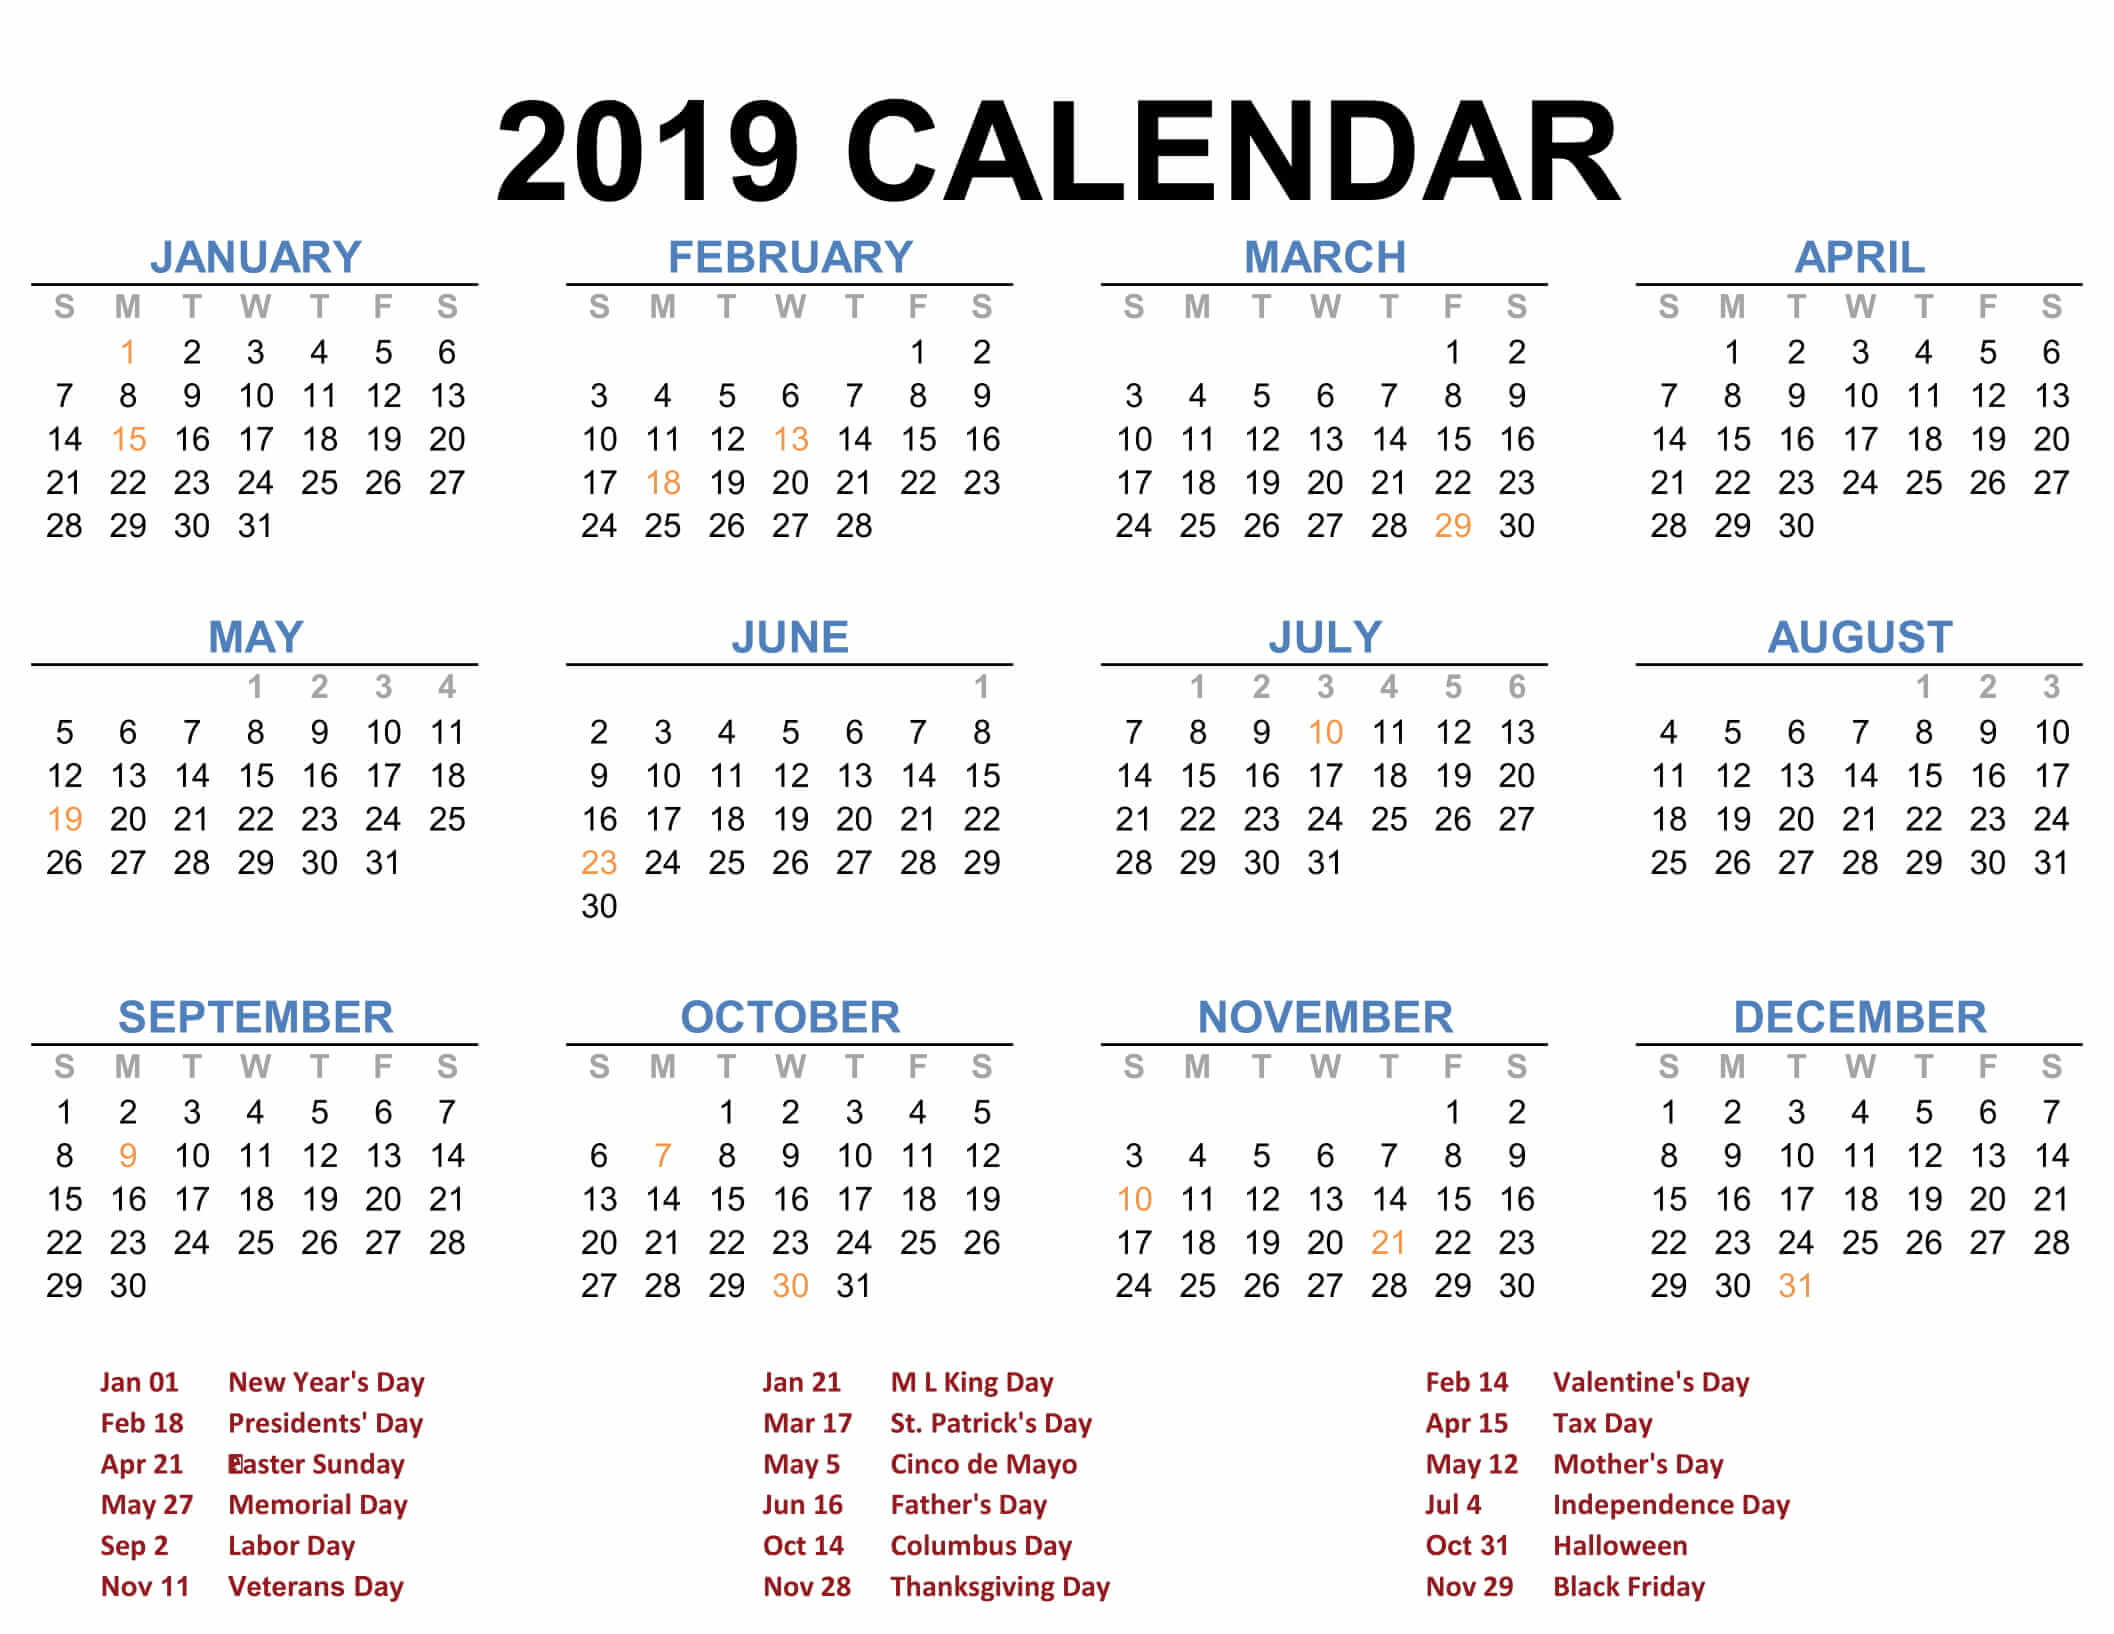 Free 2019 Yearly Calendar Template 2019 Printable Calendar Templates   PDF Excel Word   Free